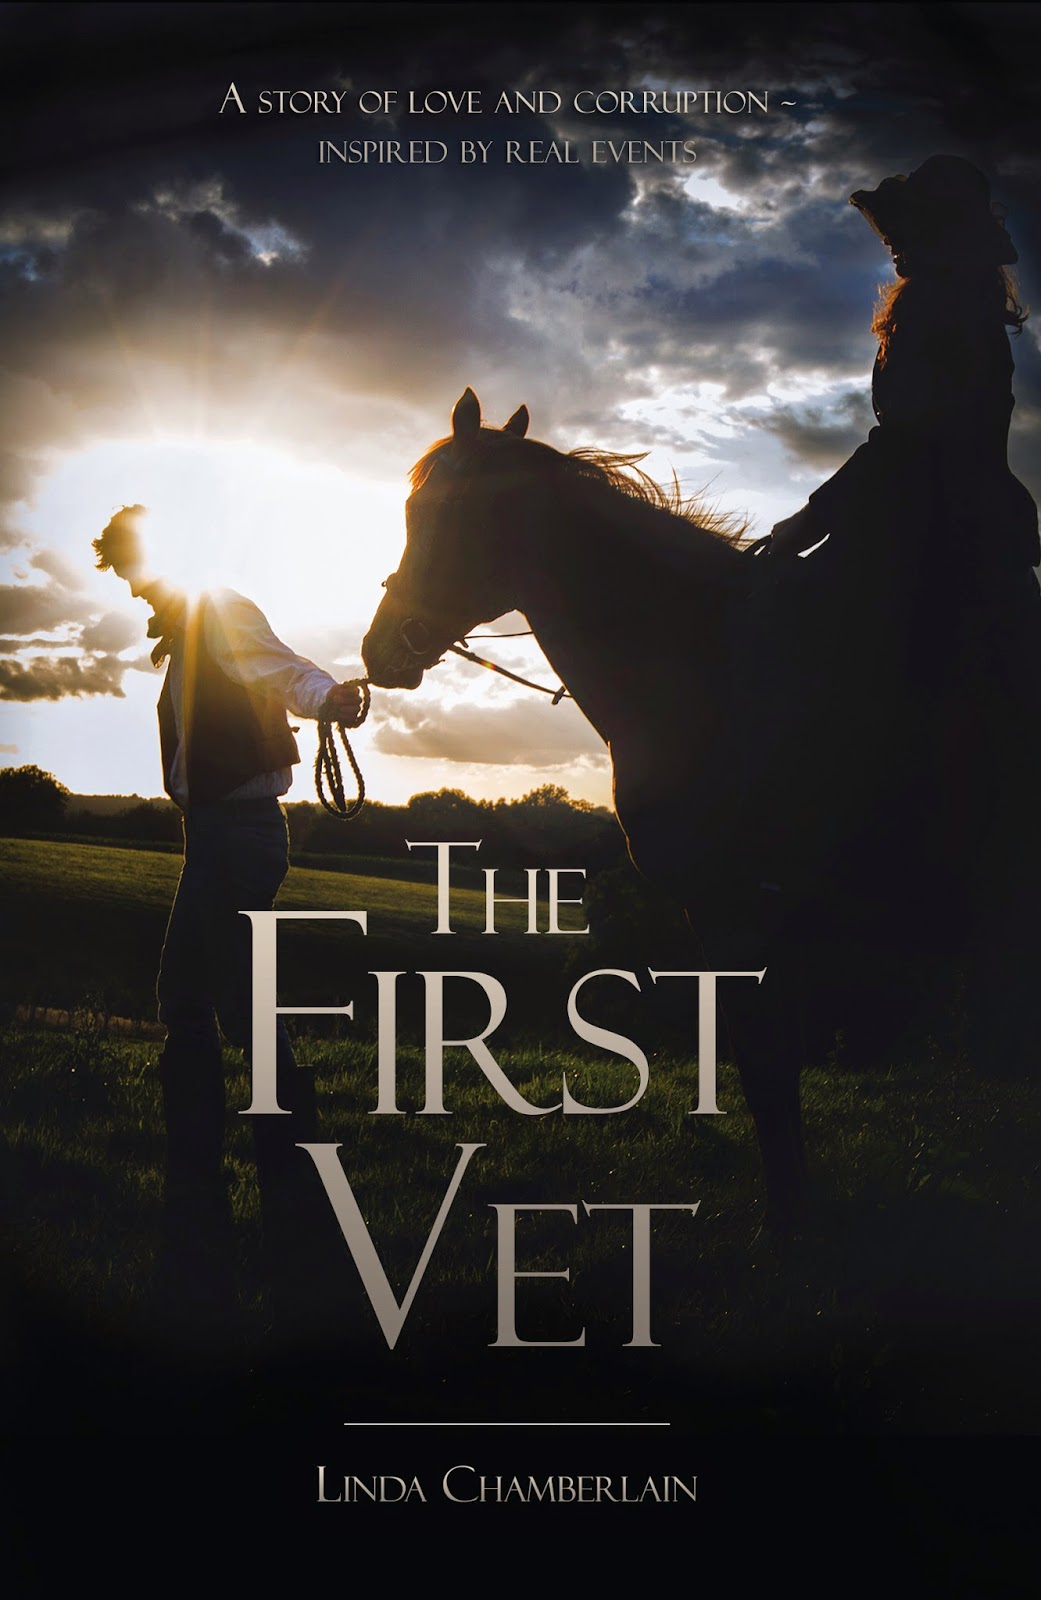 The First Vet by Linda Chamberlain, cover